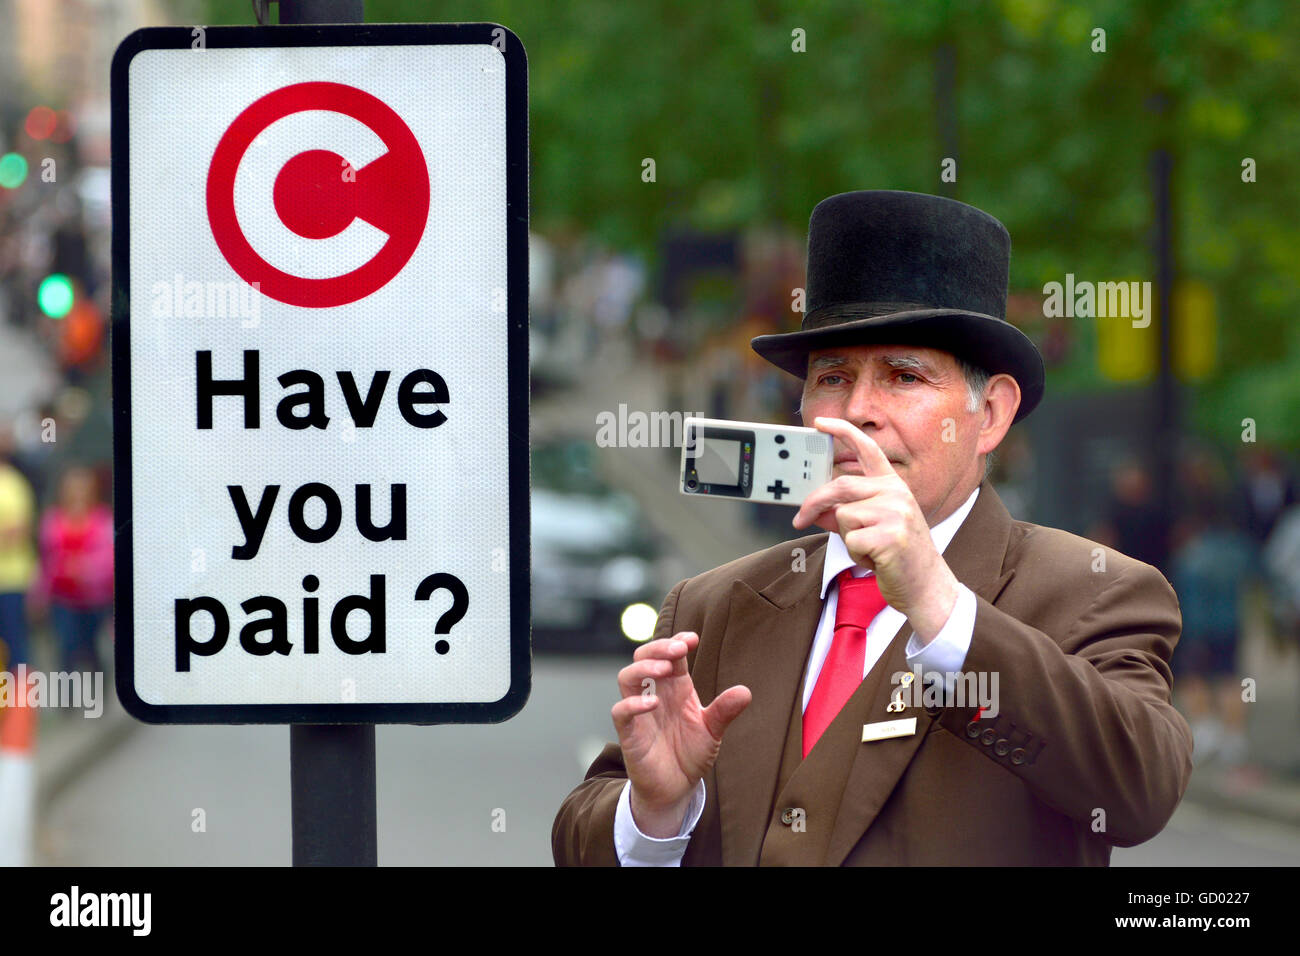 London, England, UK. Hotel doorman taking a photo of a demonstration in Park Lane, next to a Congestion Charge sign - Stock Image